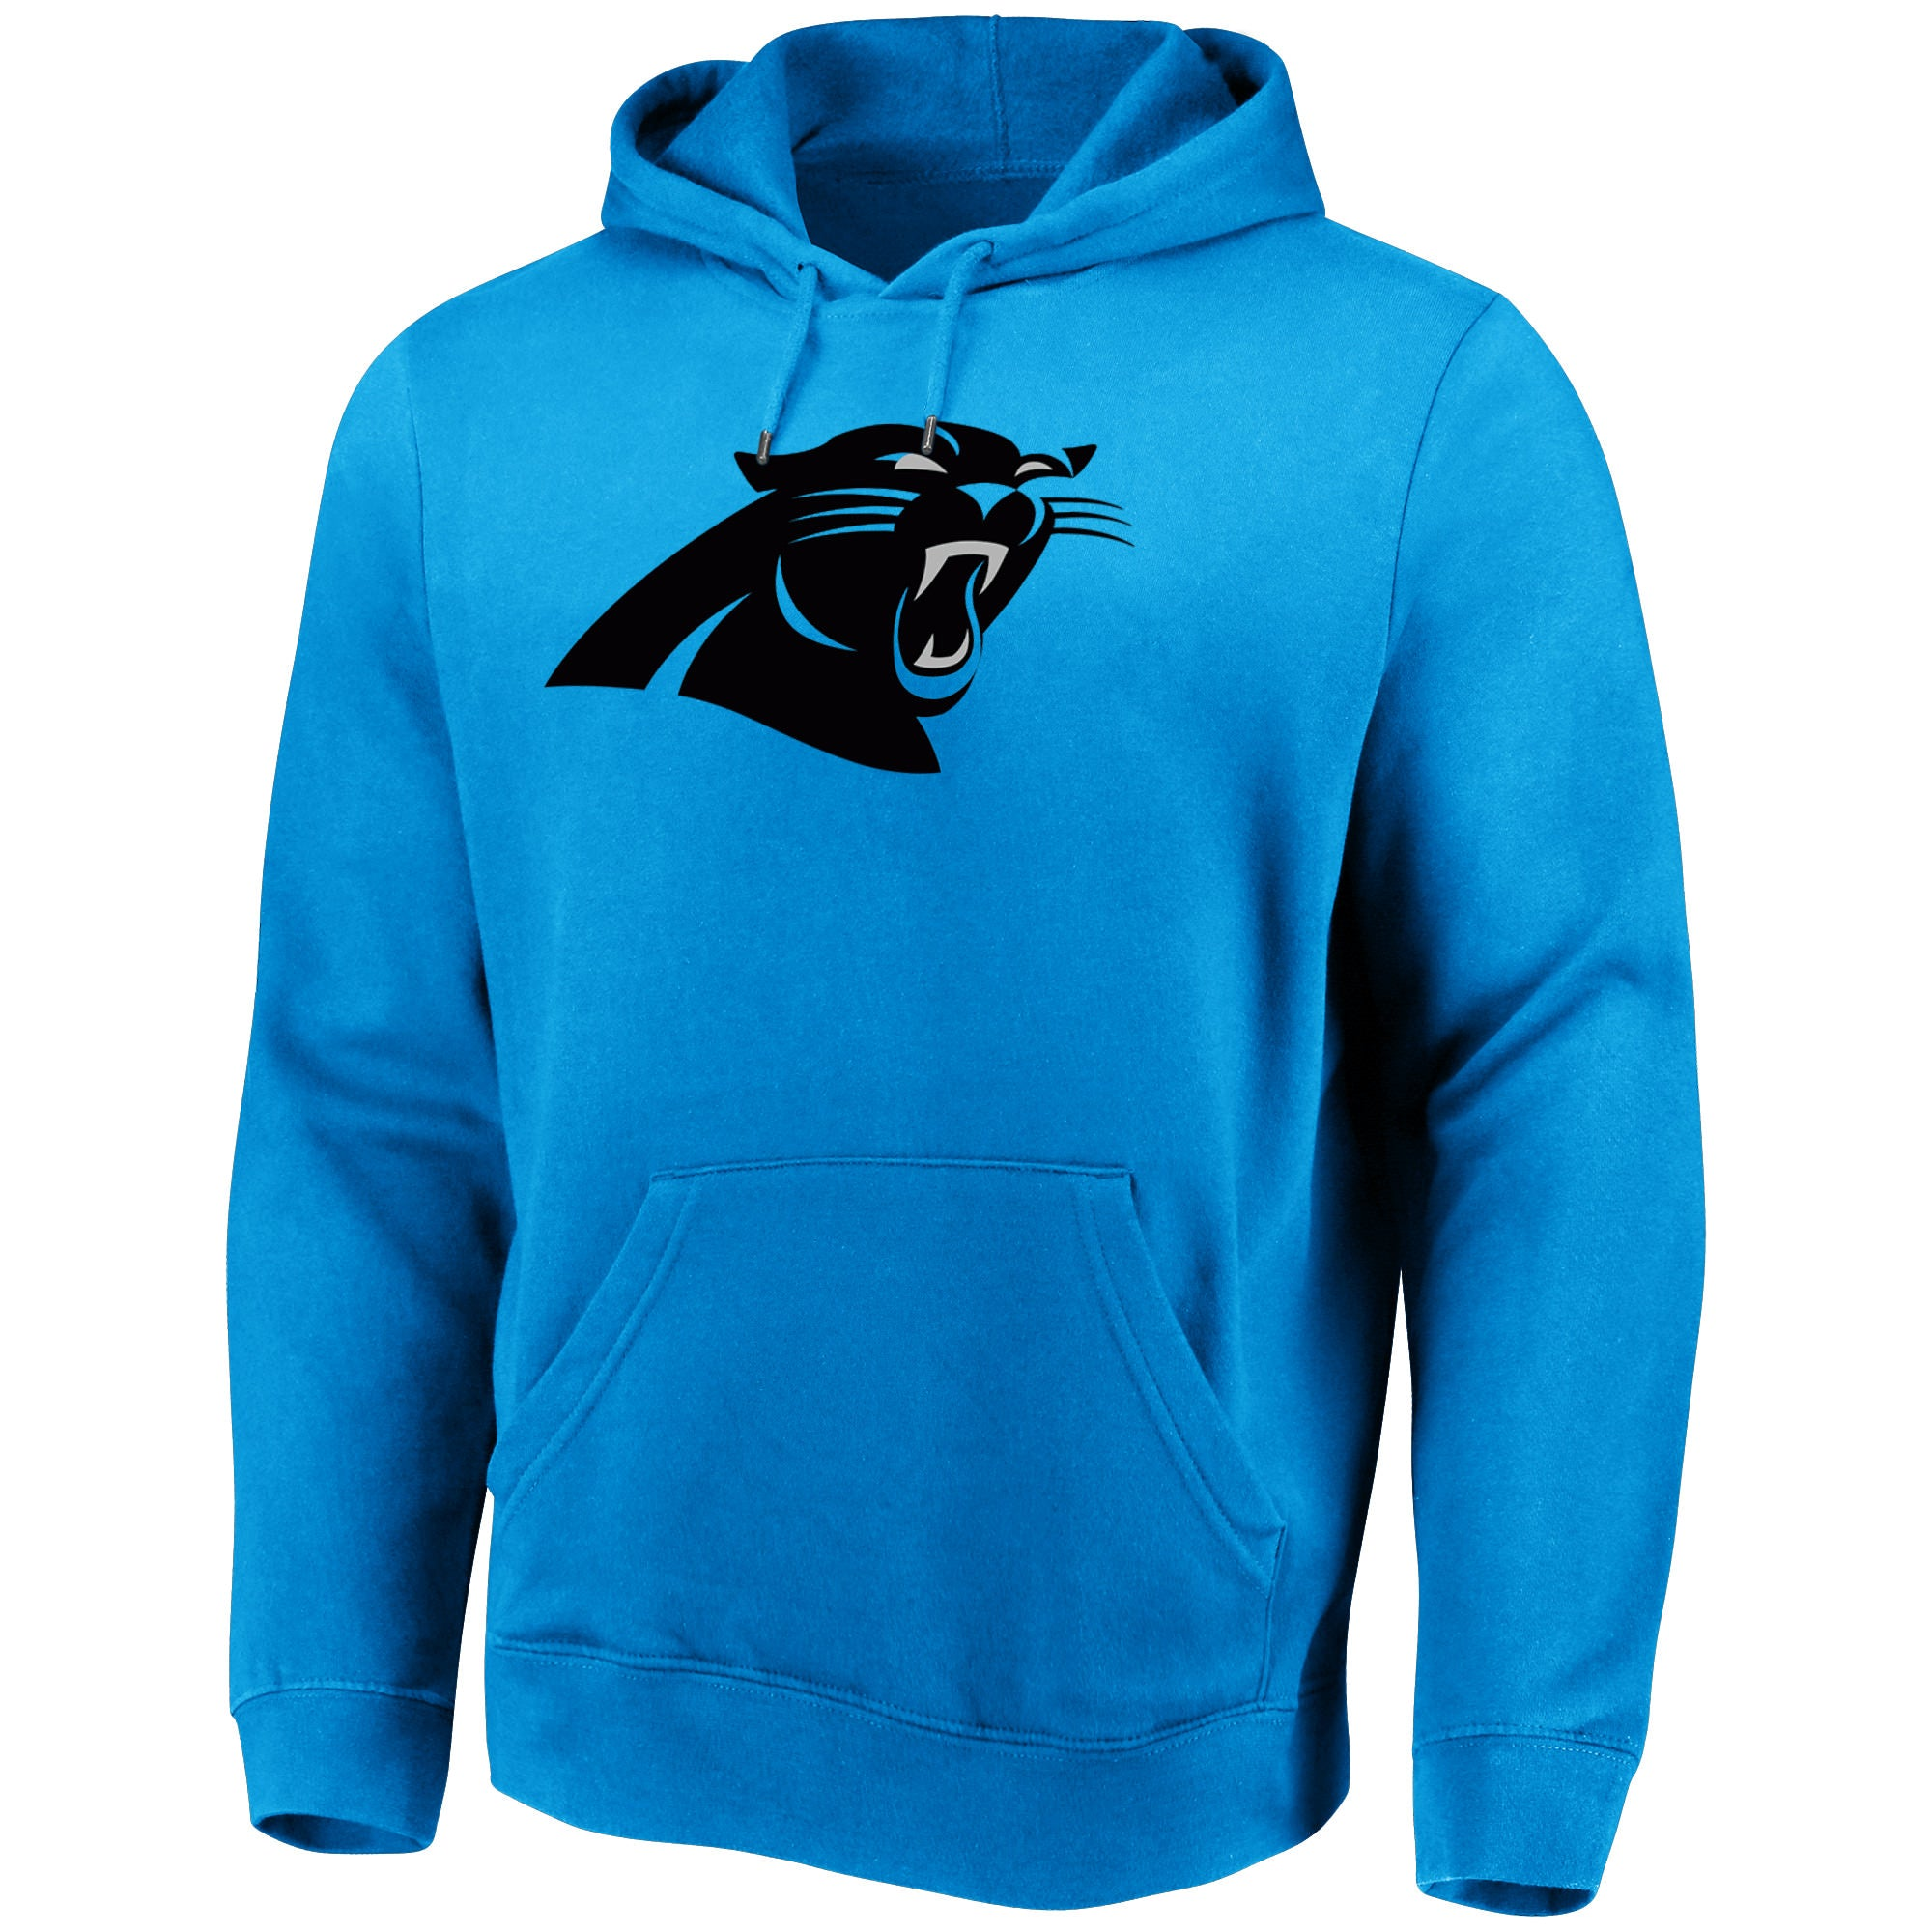 cheap for discount 9fbe1 7ebc6 Carolina Panthers NFL Perfect Play Hoodie